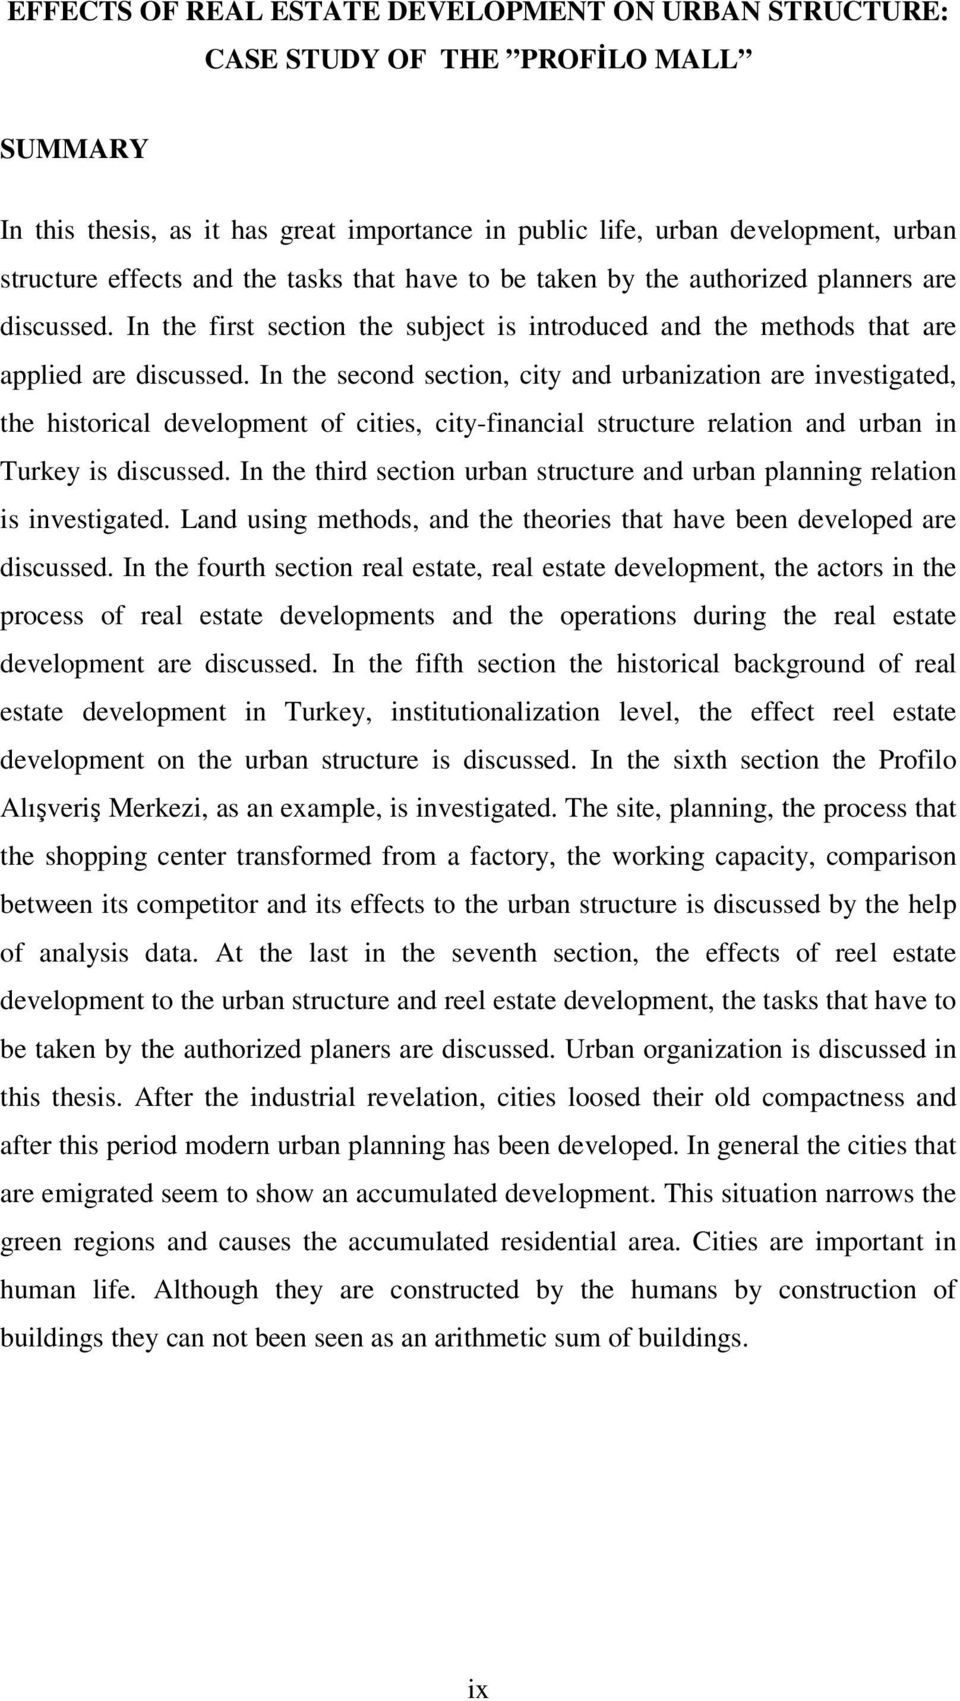 In the second section, city and urbanization are investigated, the historical development of cities, city-financial structure relation and urban in Turkey is discussed.